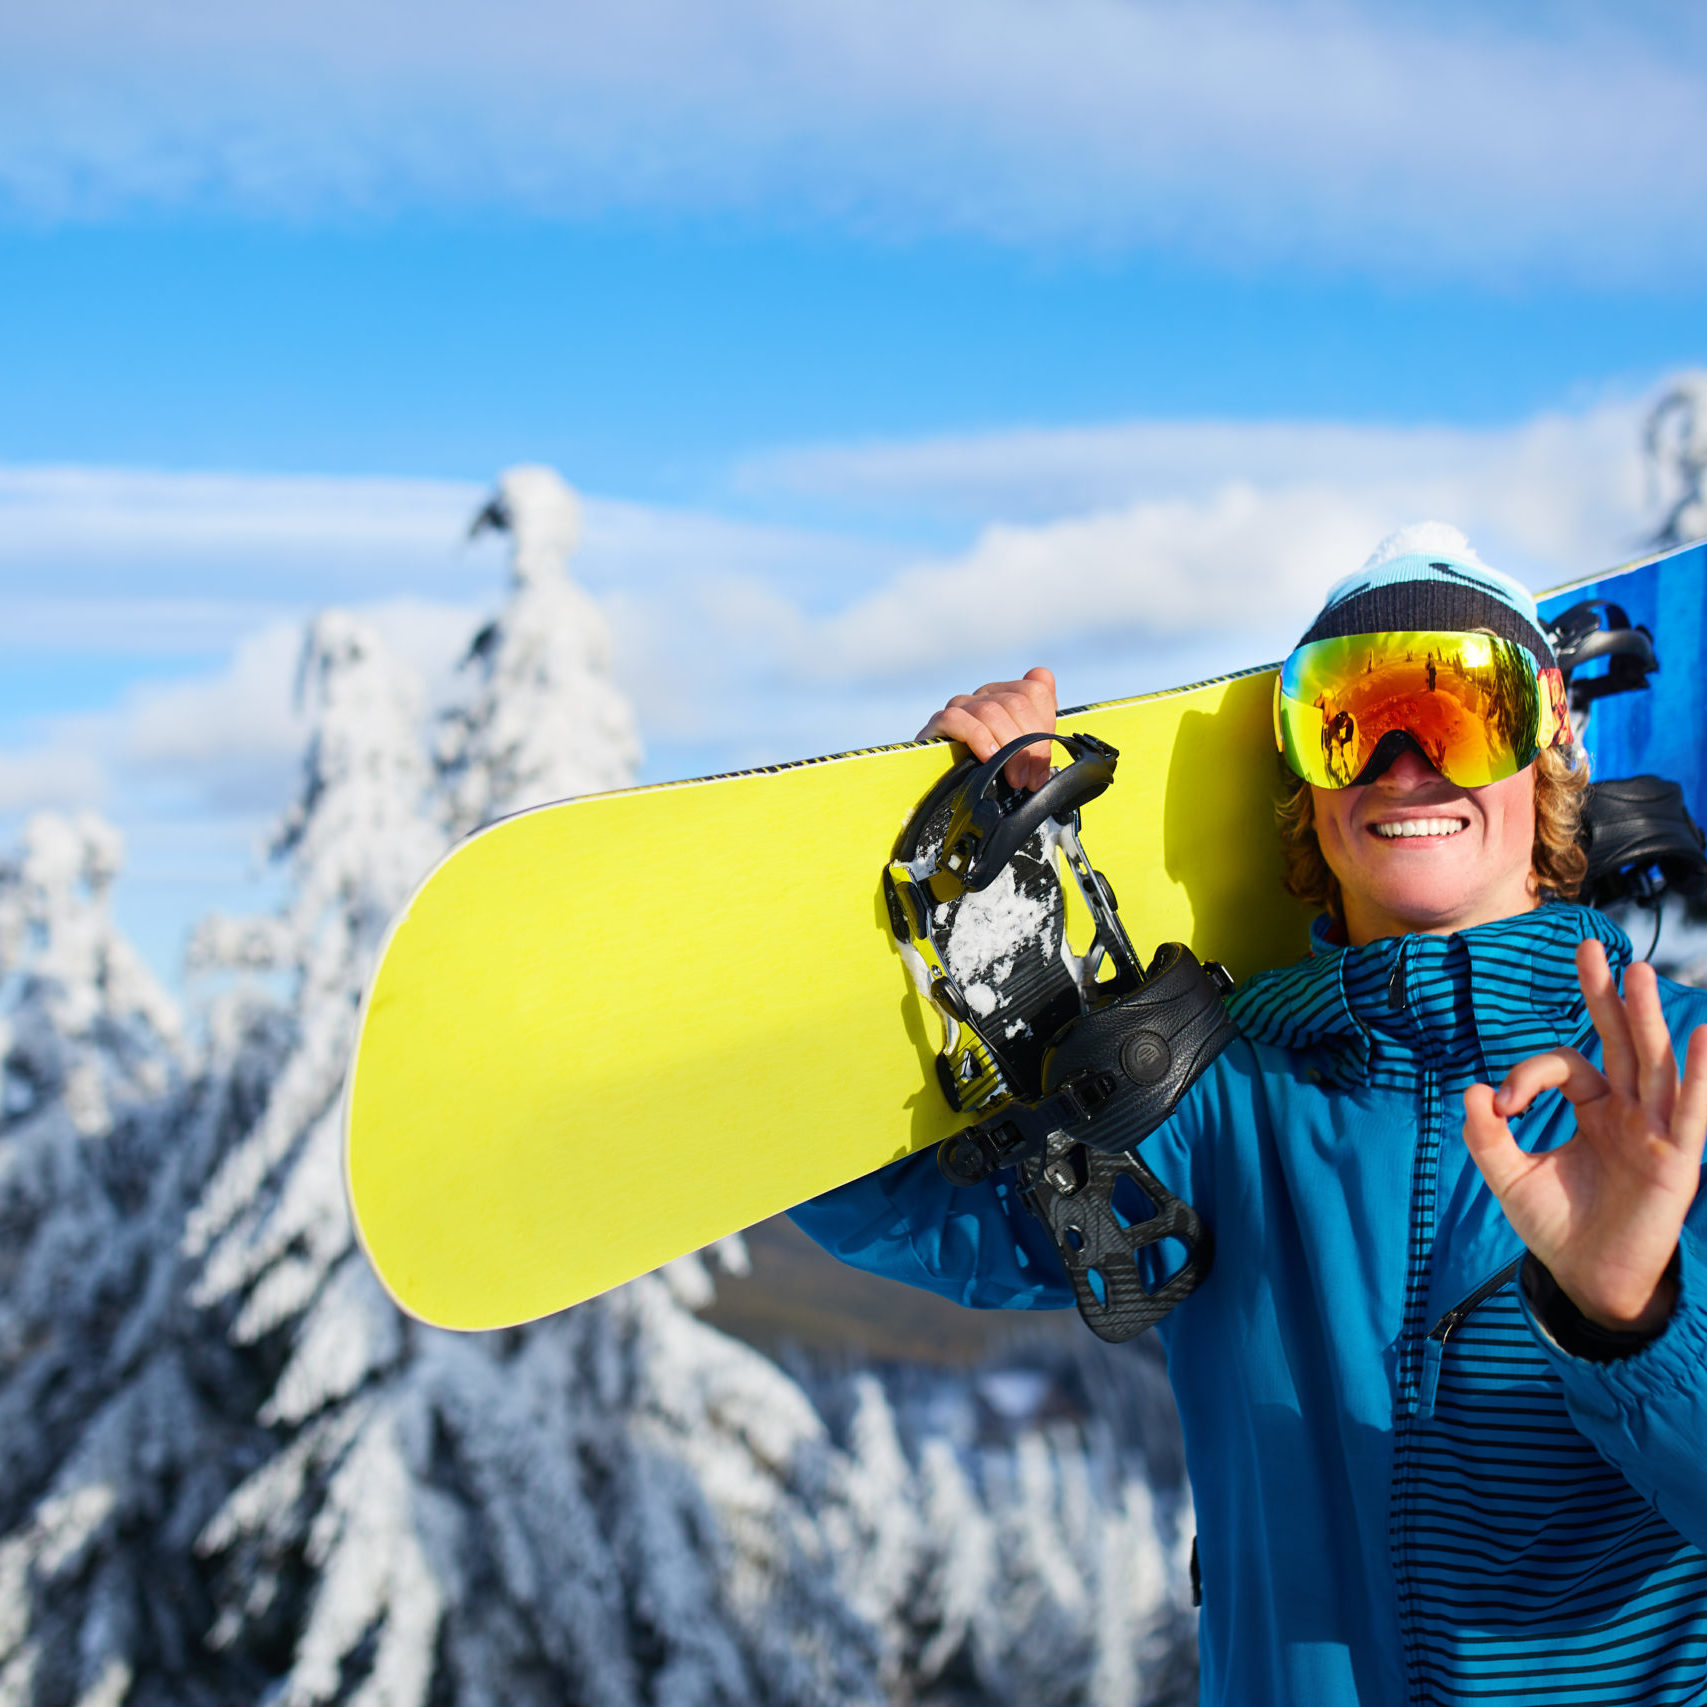 Smiling snowboarder posing carrying snowboard on shoulders at ski resort near forest before backcountry freeride and wearing reflective goggles, colorful fashion outfit. Rider showing OK sign. Modern snowboarding equipment.